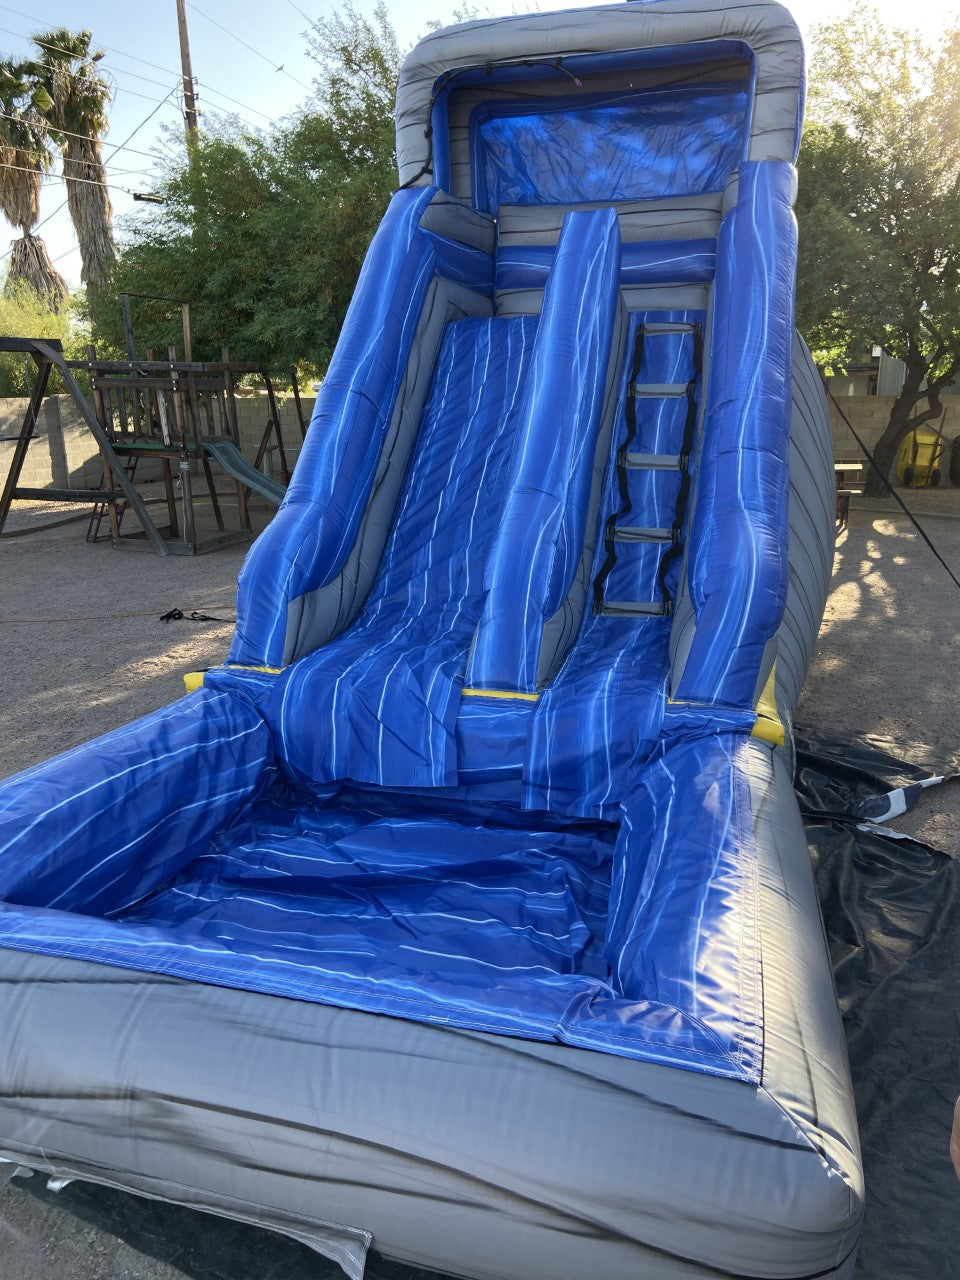 AVALANCHE SPLASH INFLATABLE WATER SLIDE